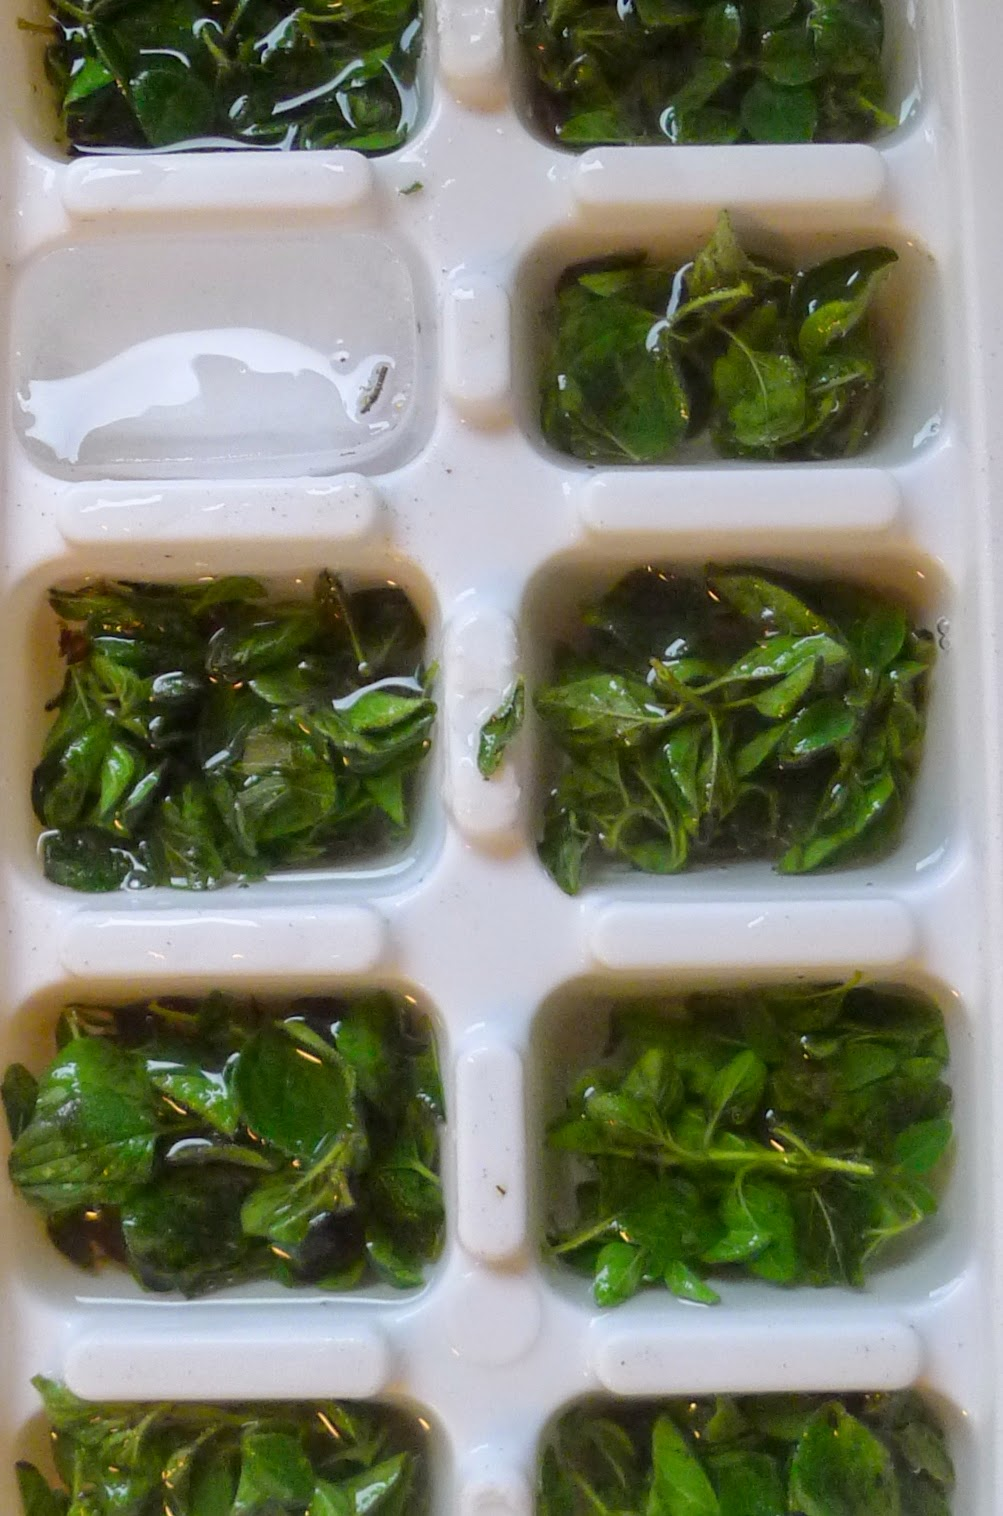 Freezing oregano, preserving herbs